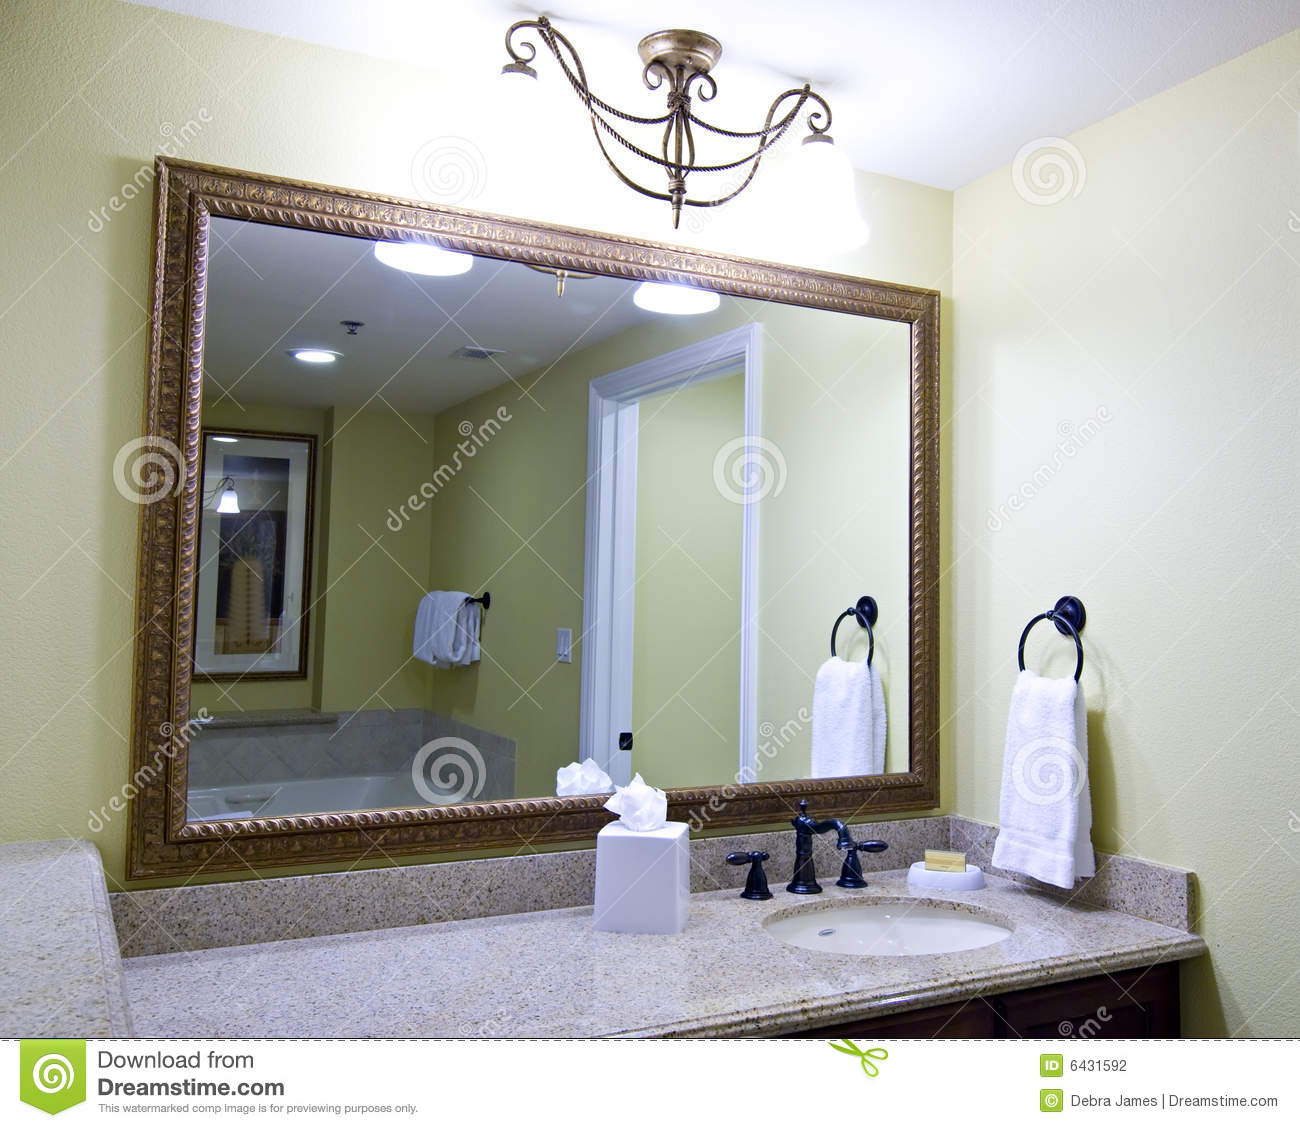 Bathroom Sink And Mirror : Large Mirror Above Sink Stock Photography - Image: 6431592